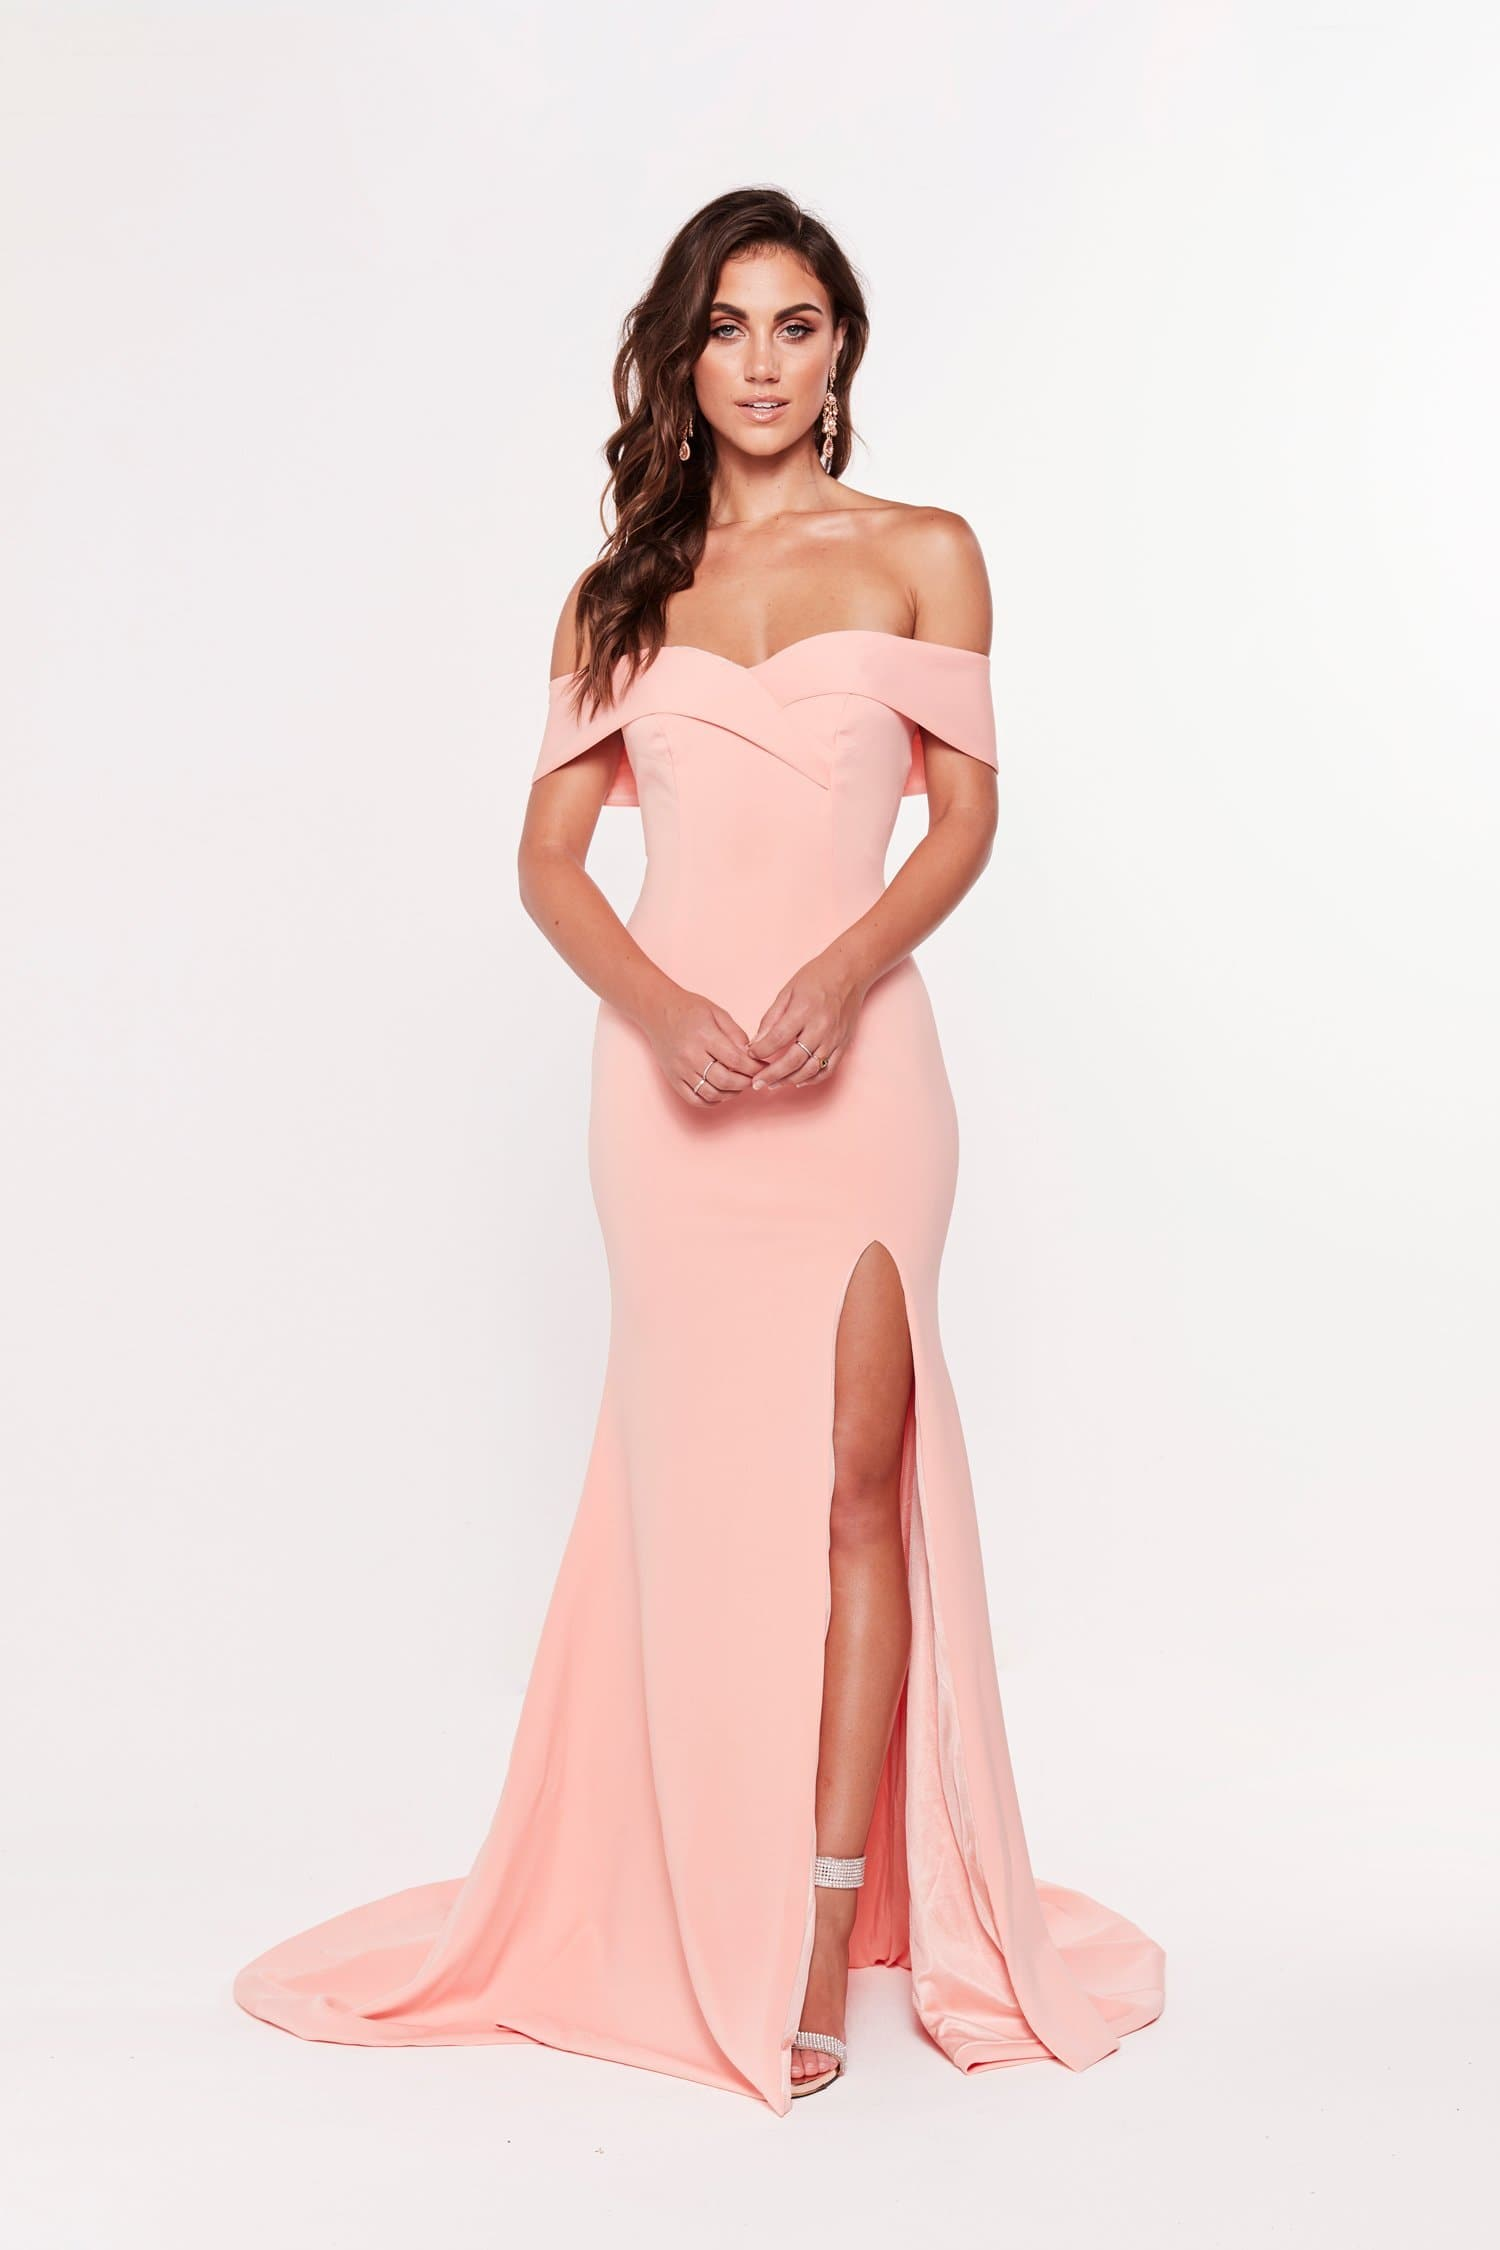 A&N Luxe Ester Off Shoulder Split Ponti Gown - Peach Bridesmaids gown prom dress